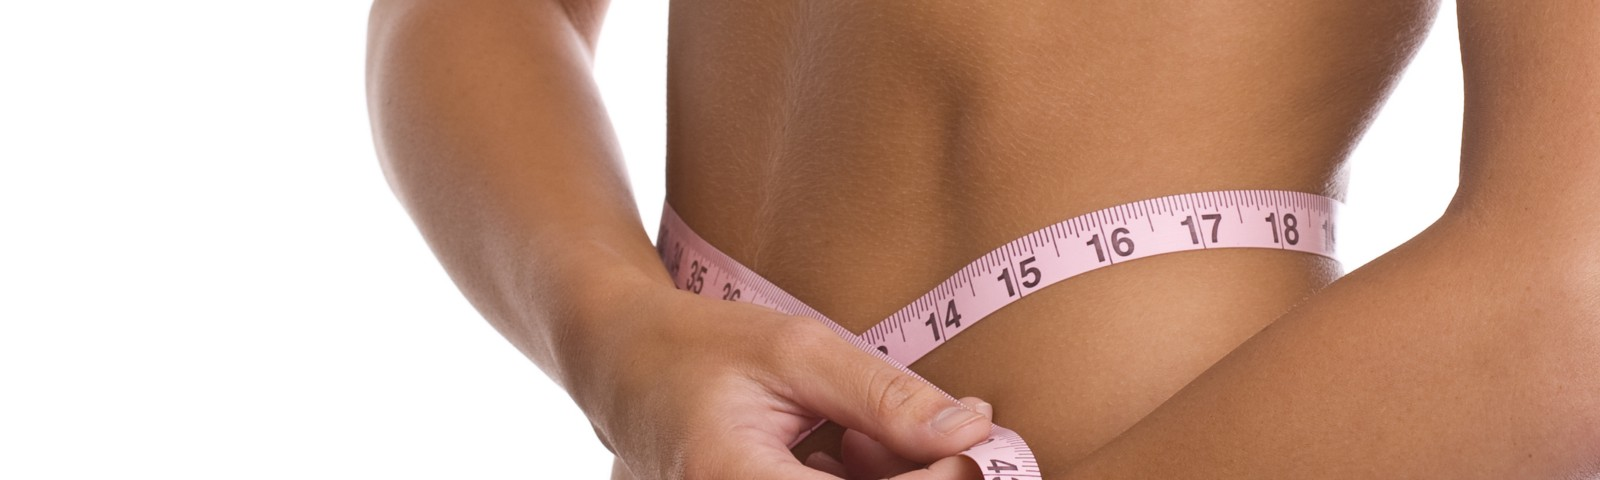 Woman measuring her waist trying to lose weight